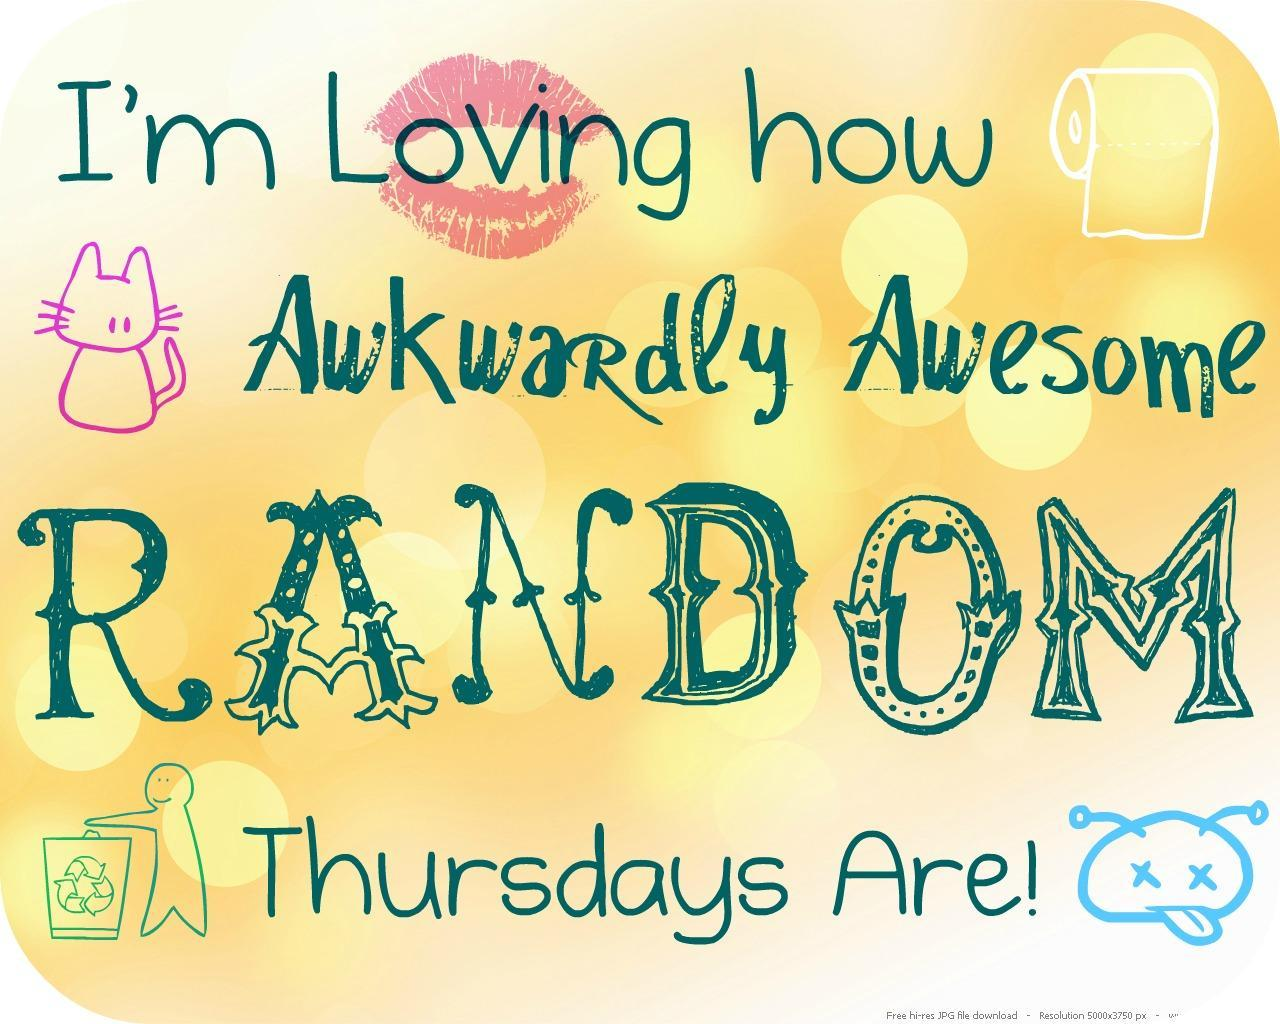 Do you love how Random you are?